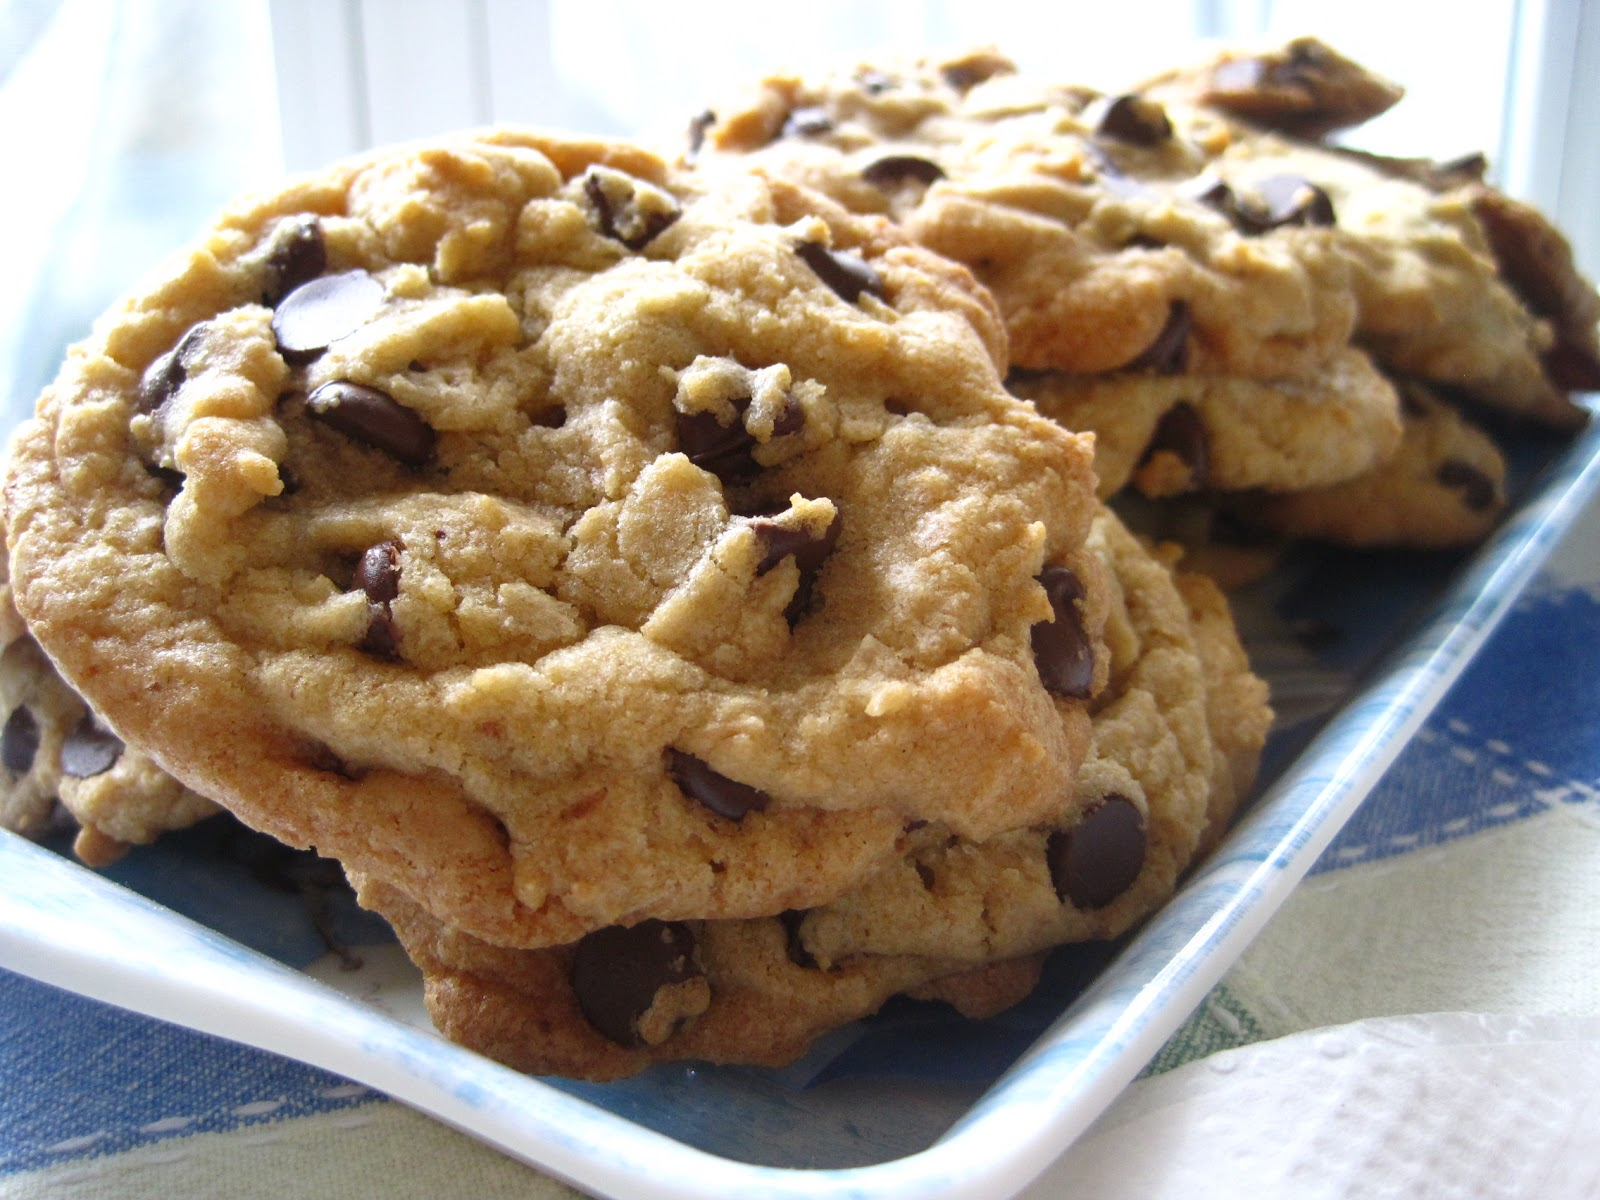 Alissamay's: Big, Fat, Chewy Chocolate Chip Cookies